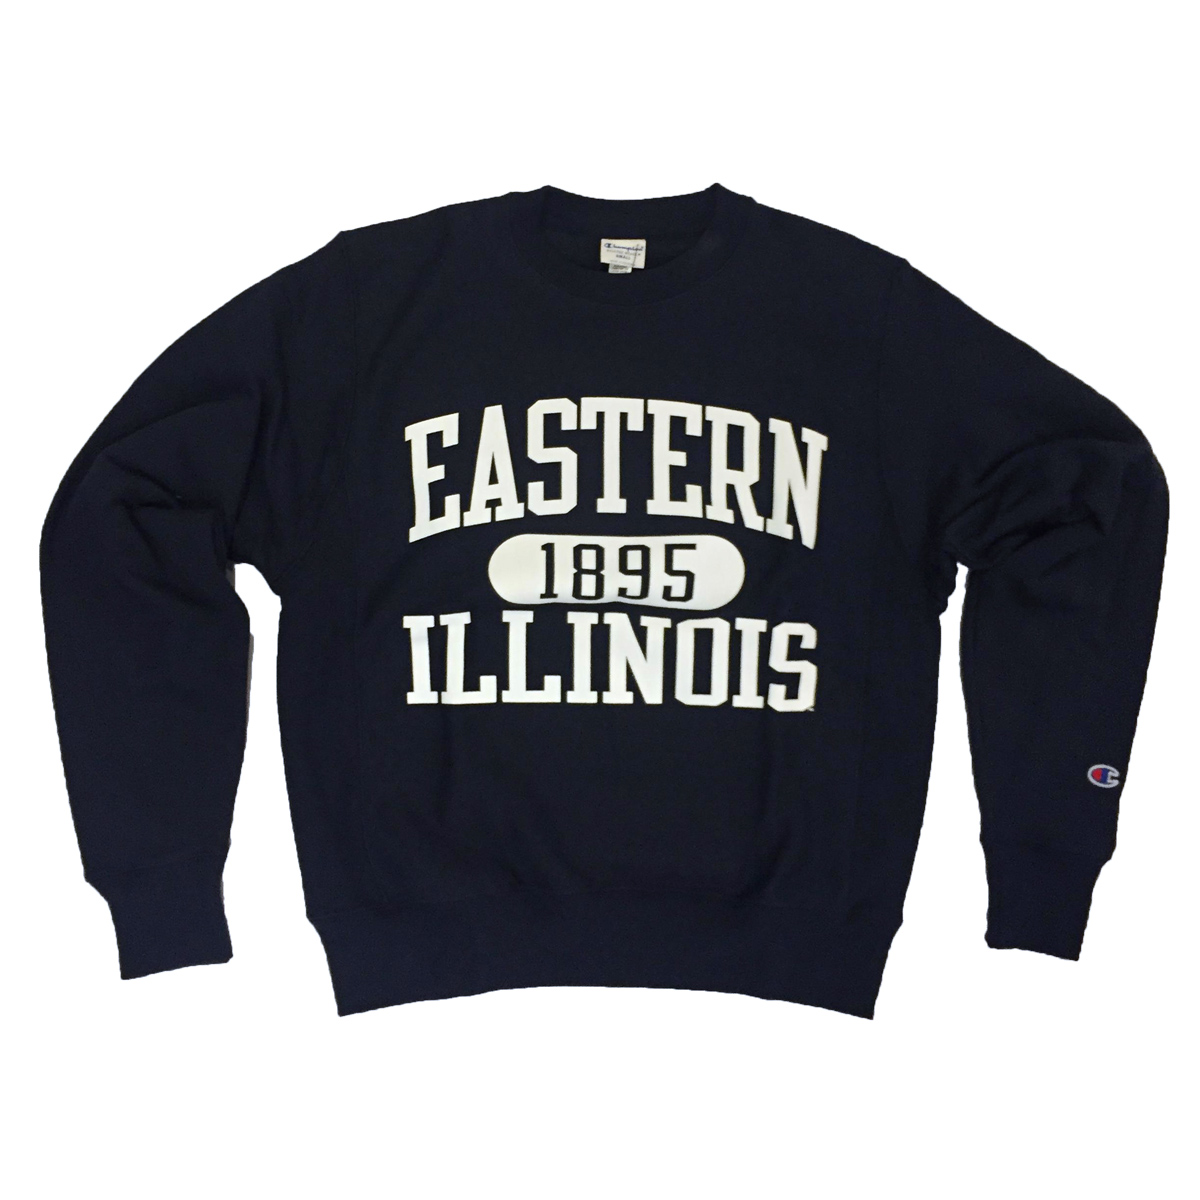 Eastern - 1895 - Illinois Crew Neck Sweatshirt